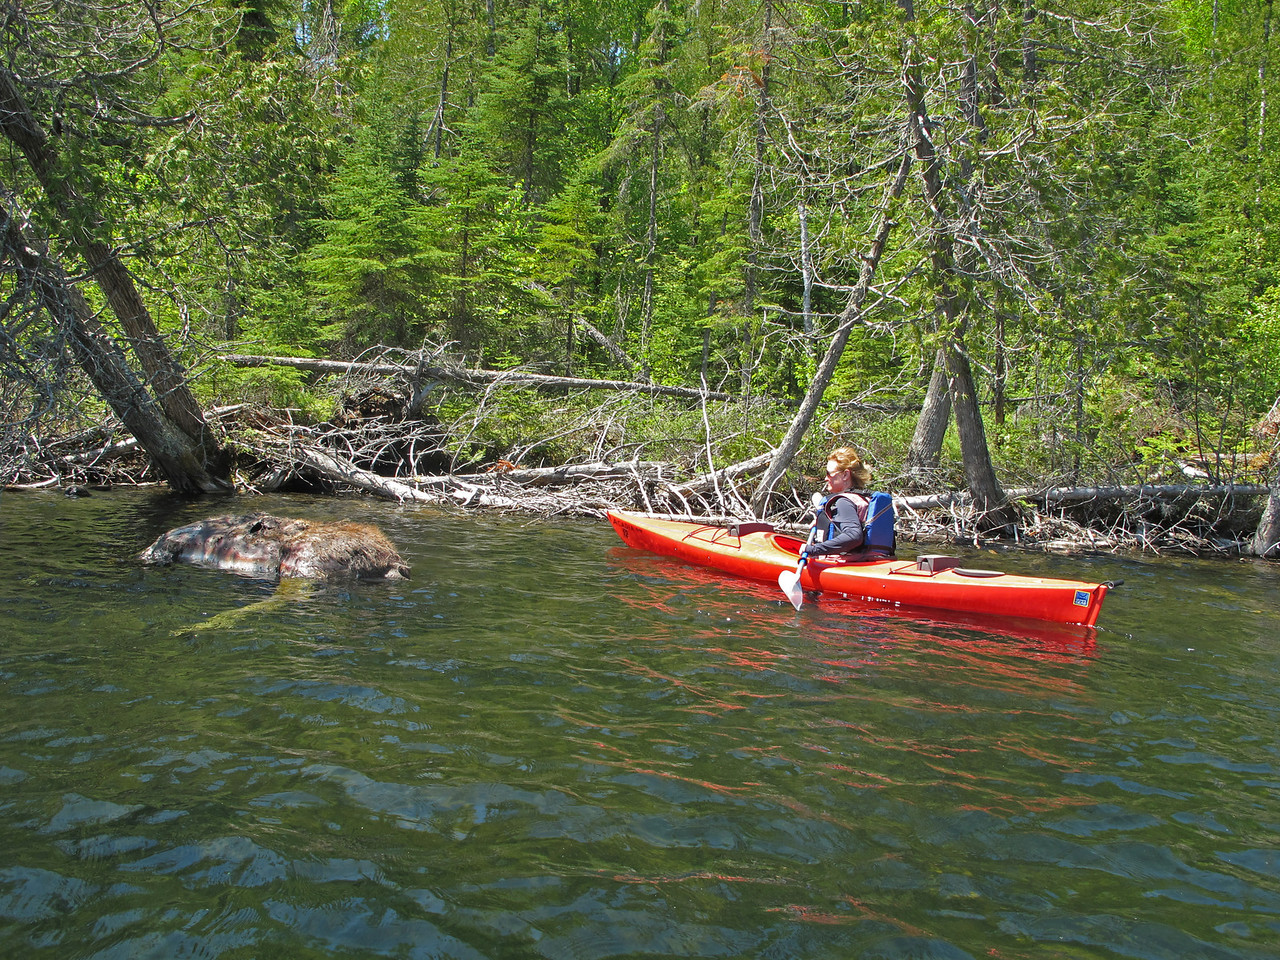 Dead Moose<br /> <br /> I wanted to show our granddaughter a moose but not the one we encountered.  Karla spotted what we thought was a rock near the shore in a back bay.  As we paddled closer, the swarms of flies gave a clue to the harsh reality.  Luckily, we were on the up-wind side and didn't encounter any of the smell.  Moose have been dying over the last few years and researchers don't have any answers as to why this is happening.